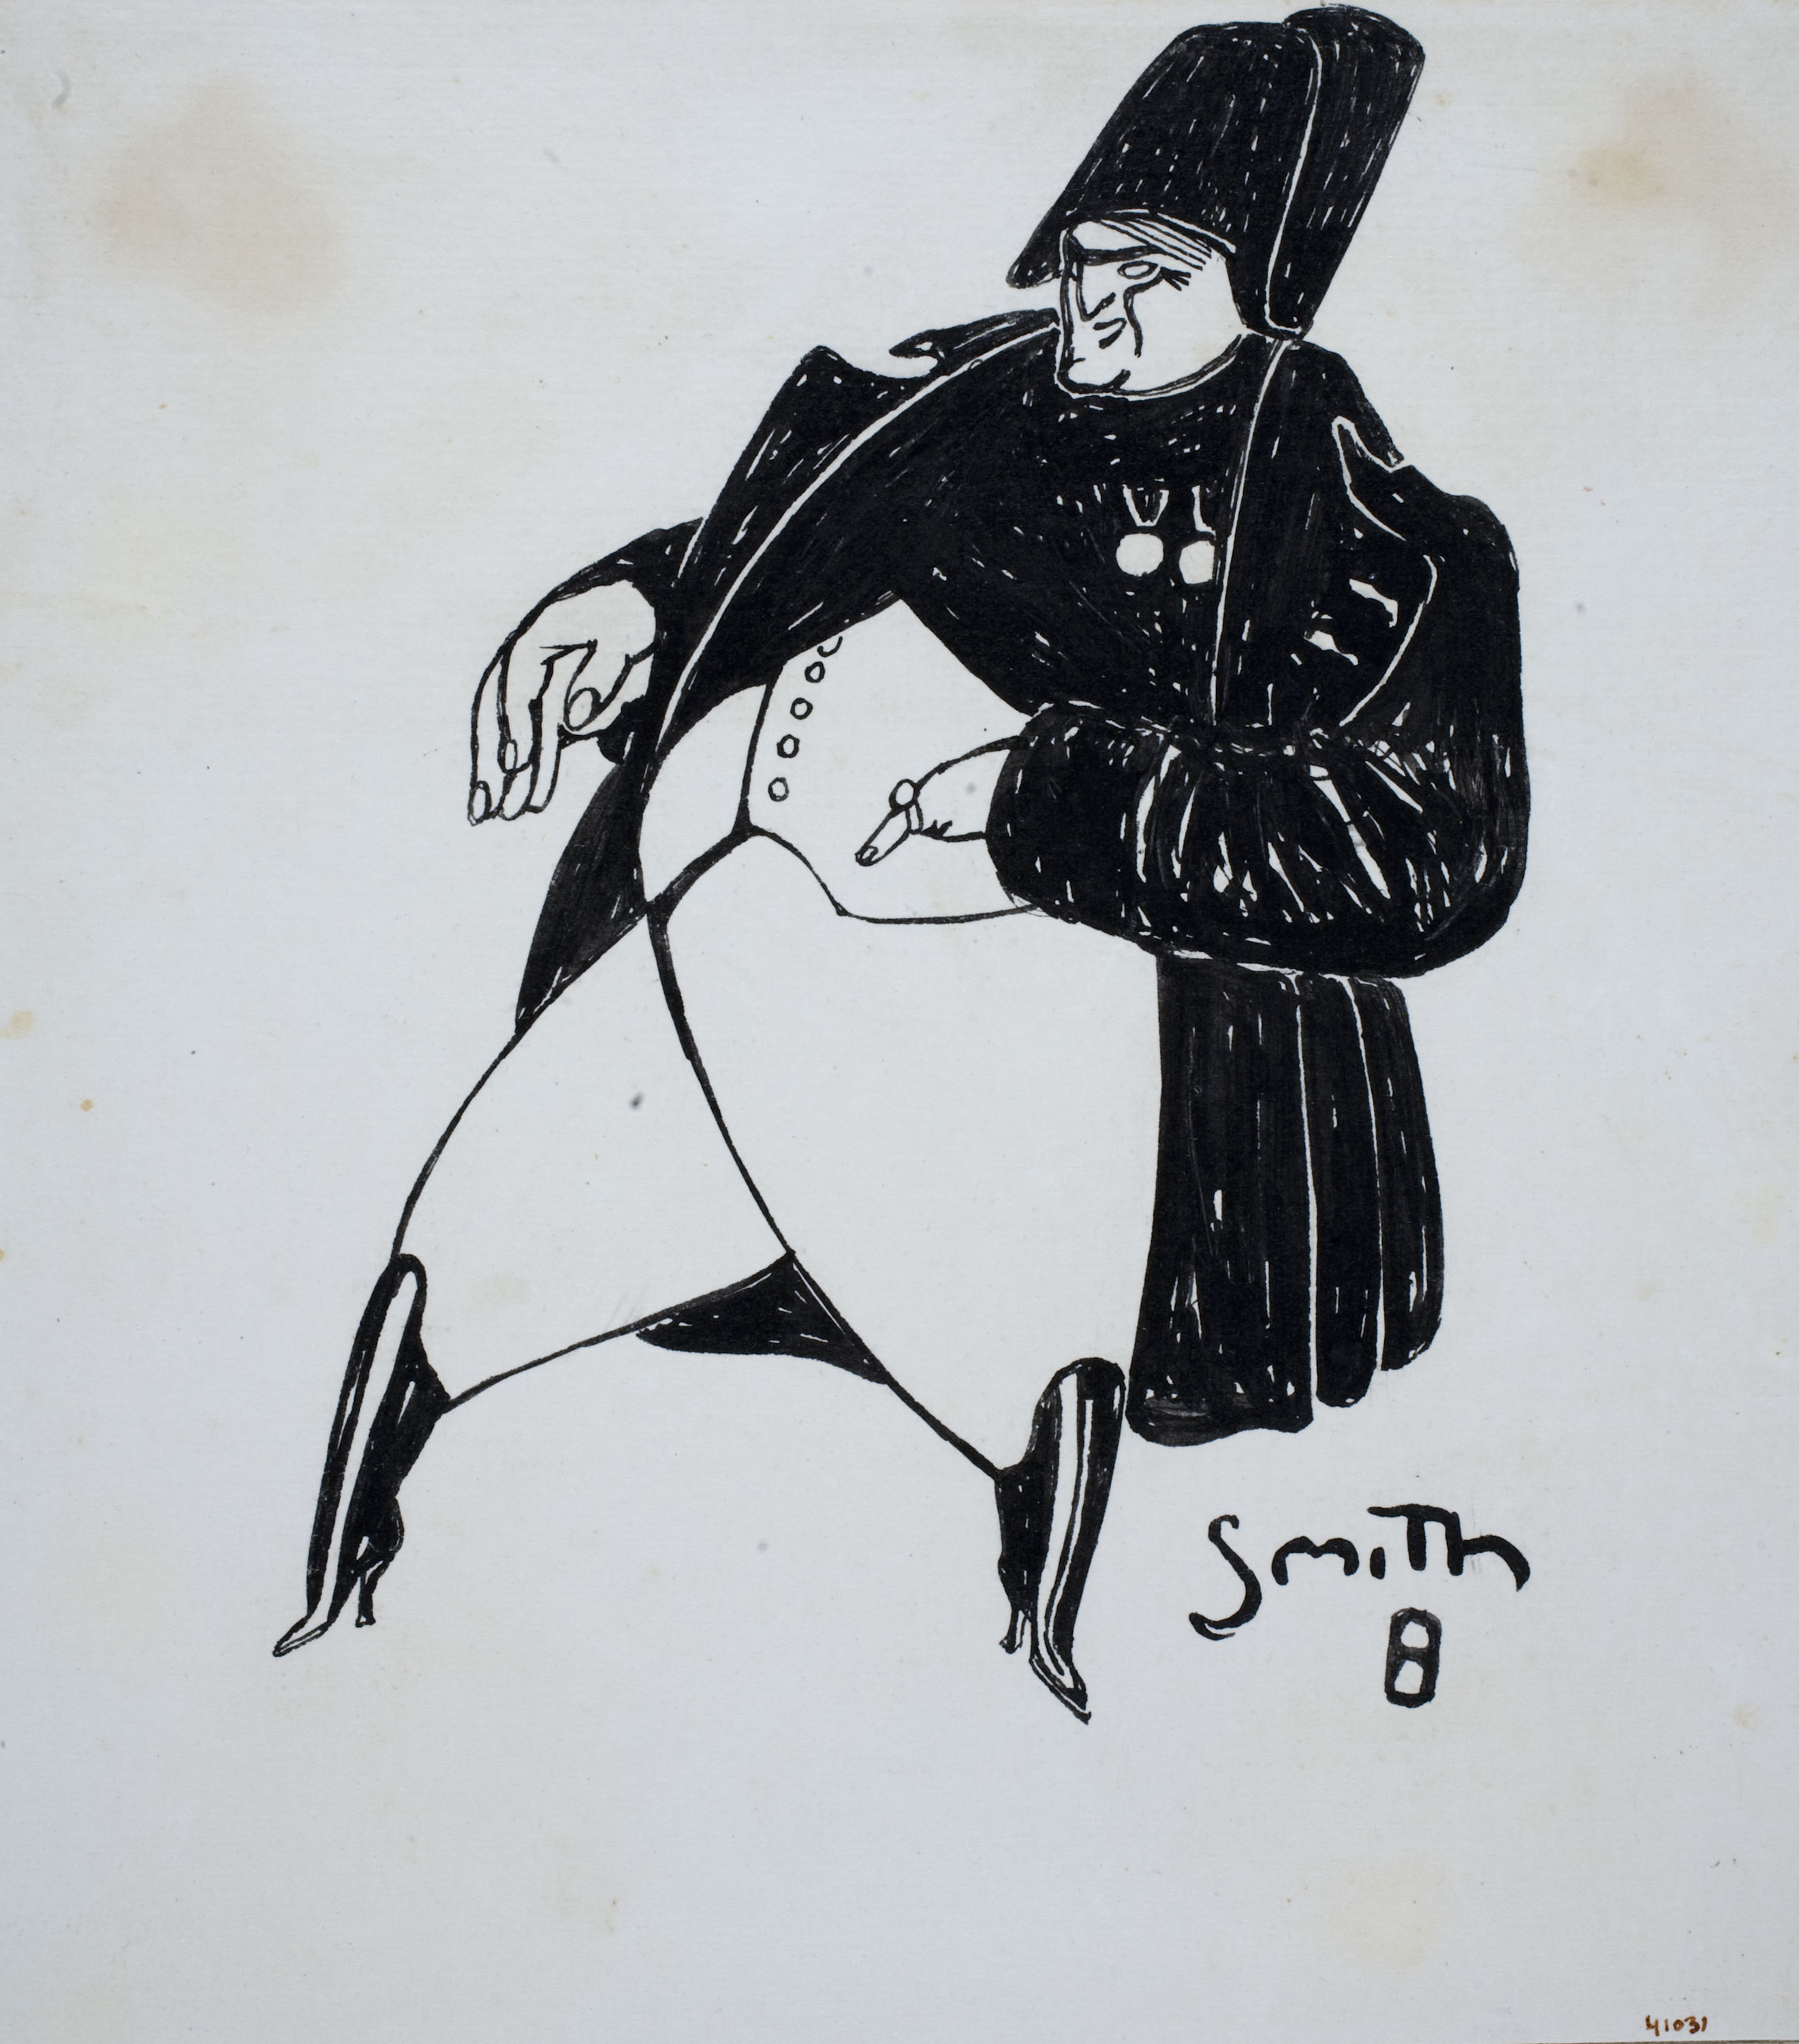 Ismael Smith - Caricature of Napoleon - [no-dating]